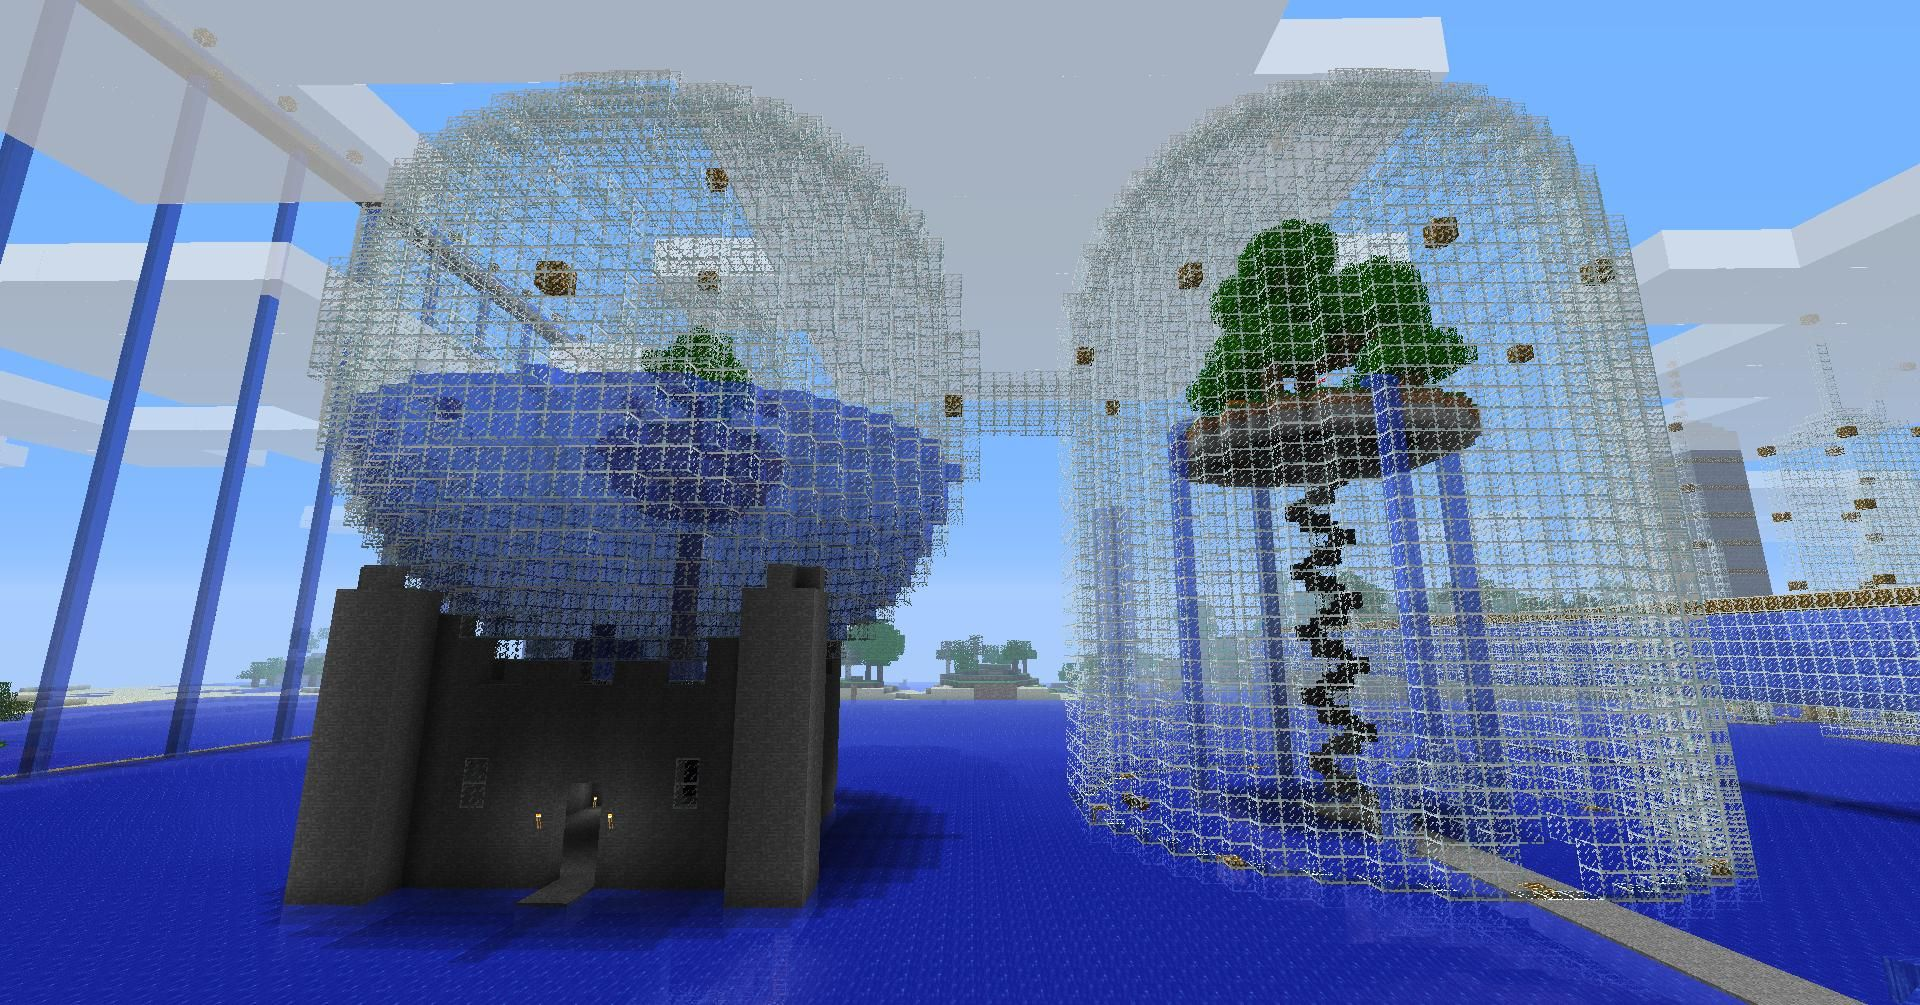 Amazing Minecraft Structures Minecraft What Tools Do You Use